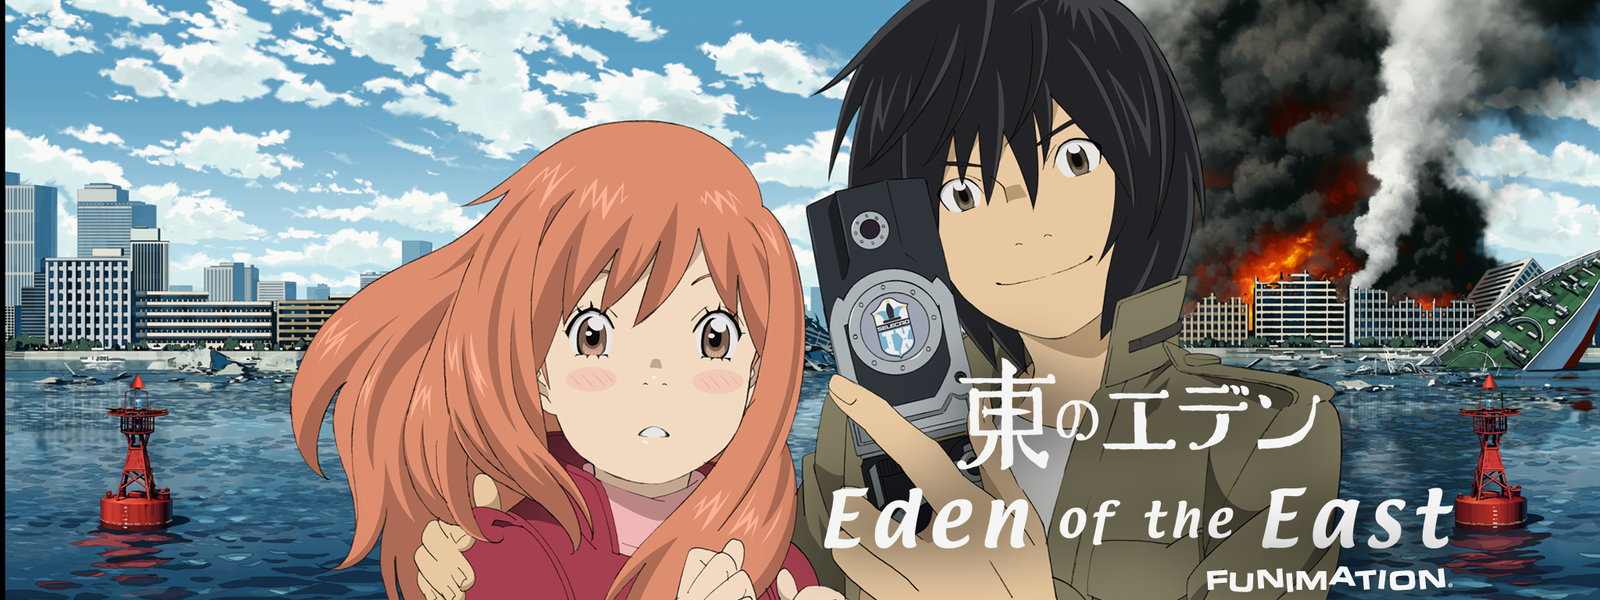 Image result for eden of the east